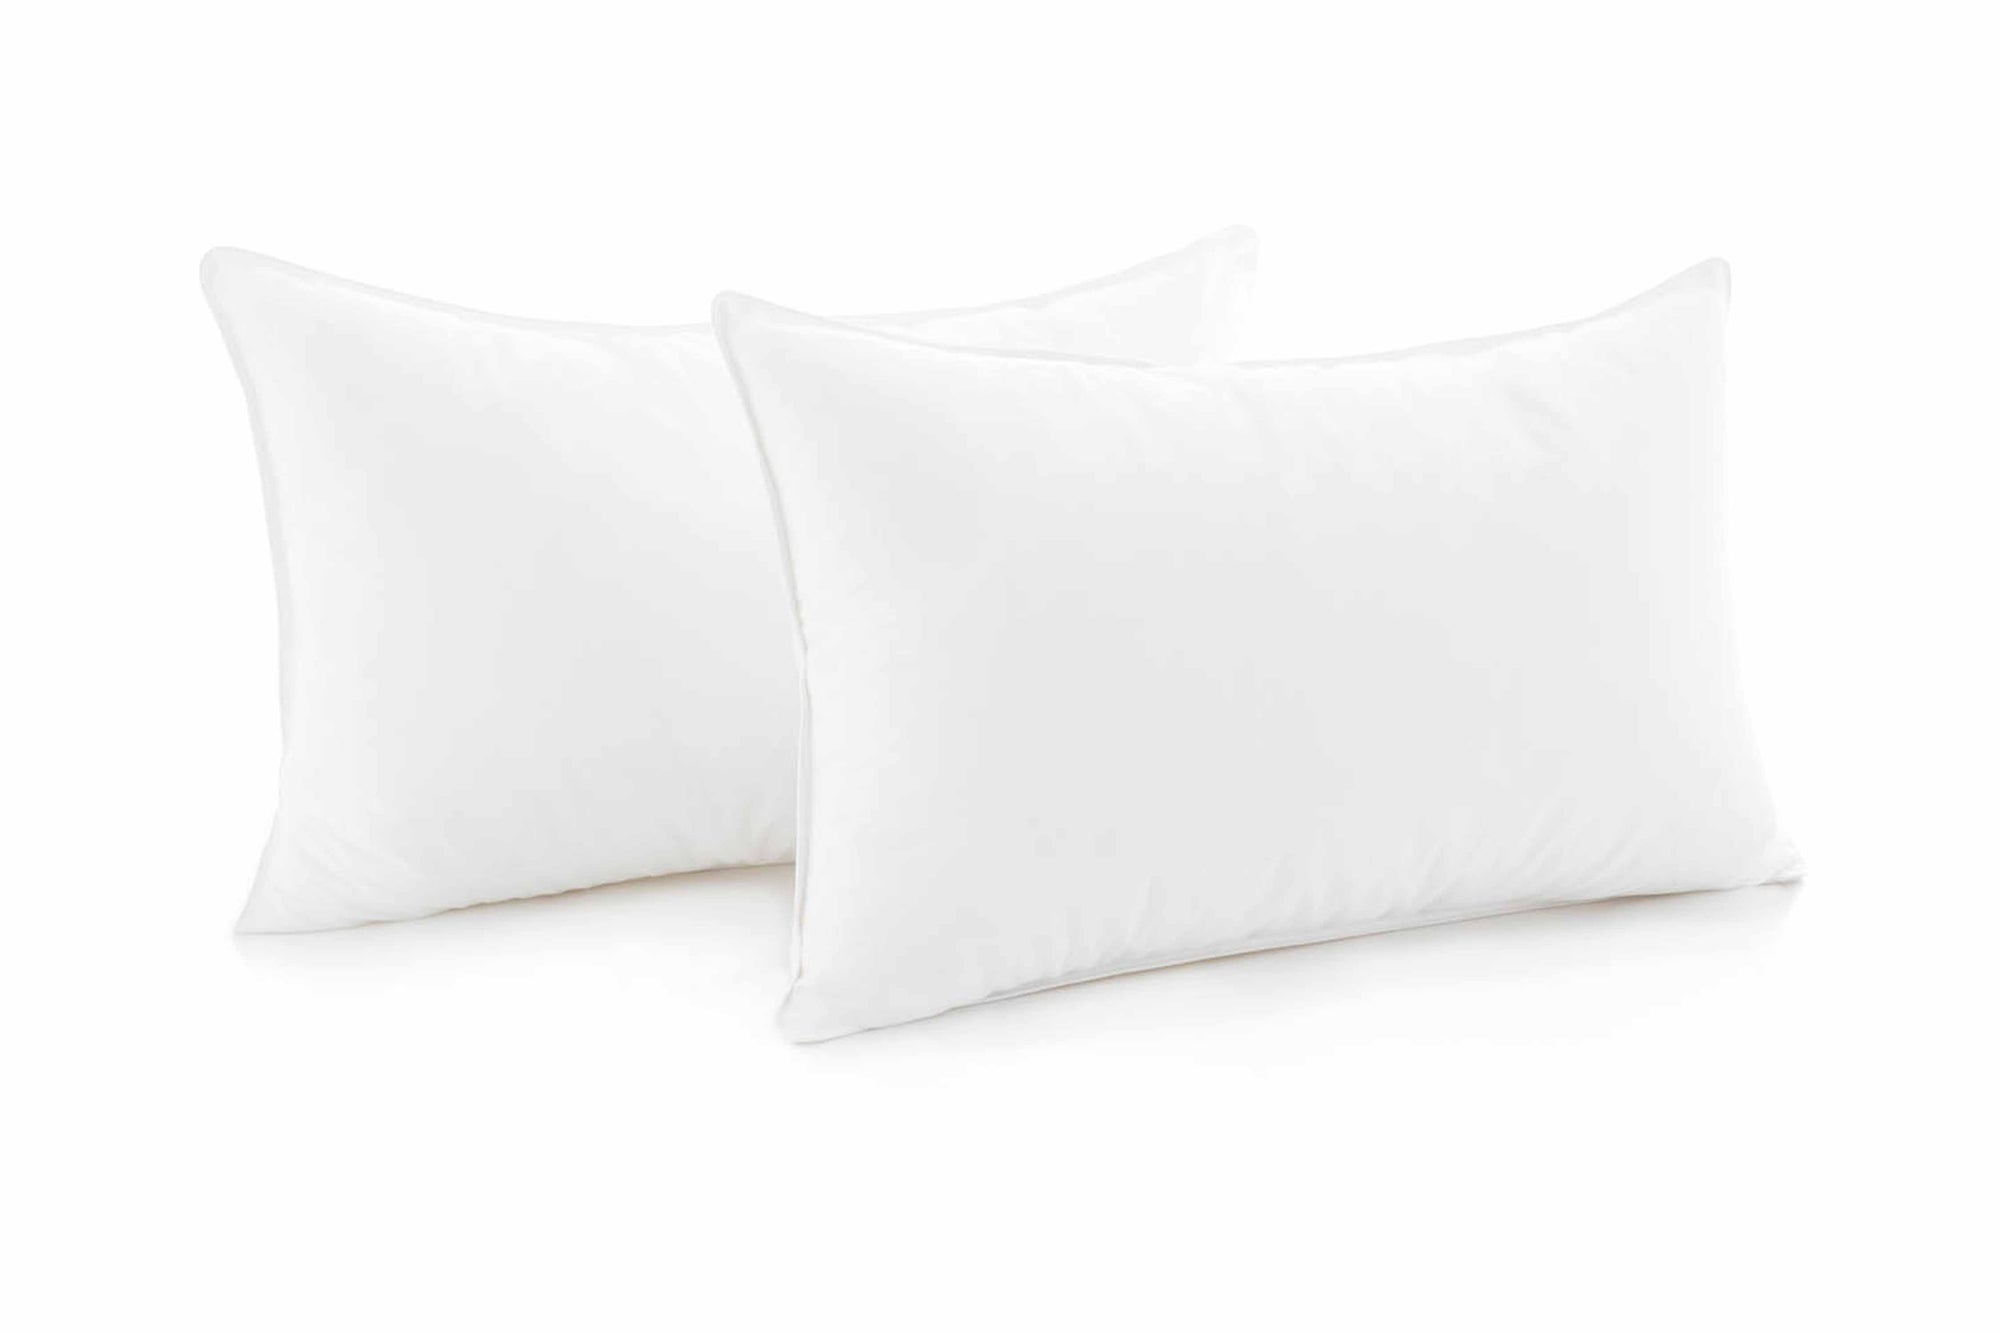 WEEKENDER DOWN ALTERNATIVE PILLOW (2-PACK)